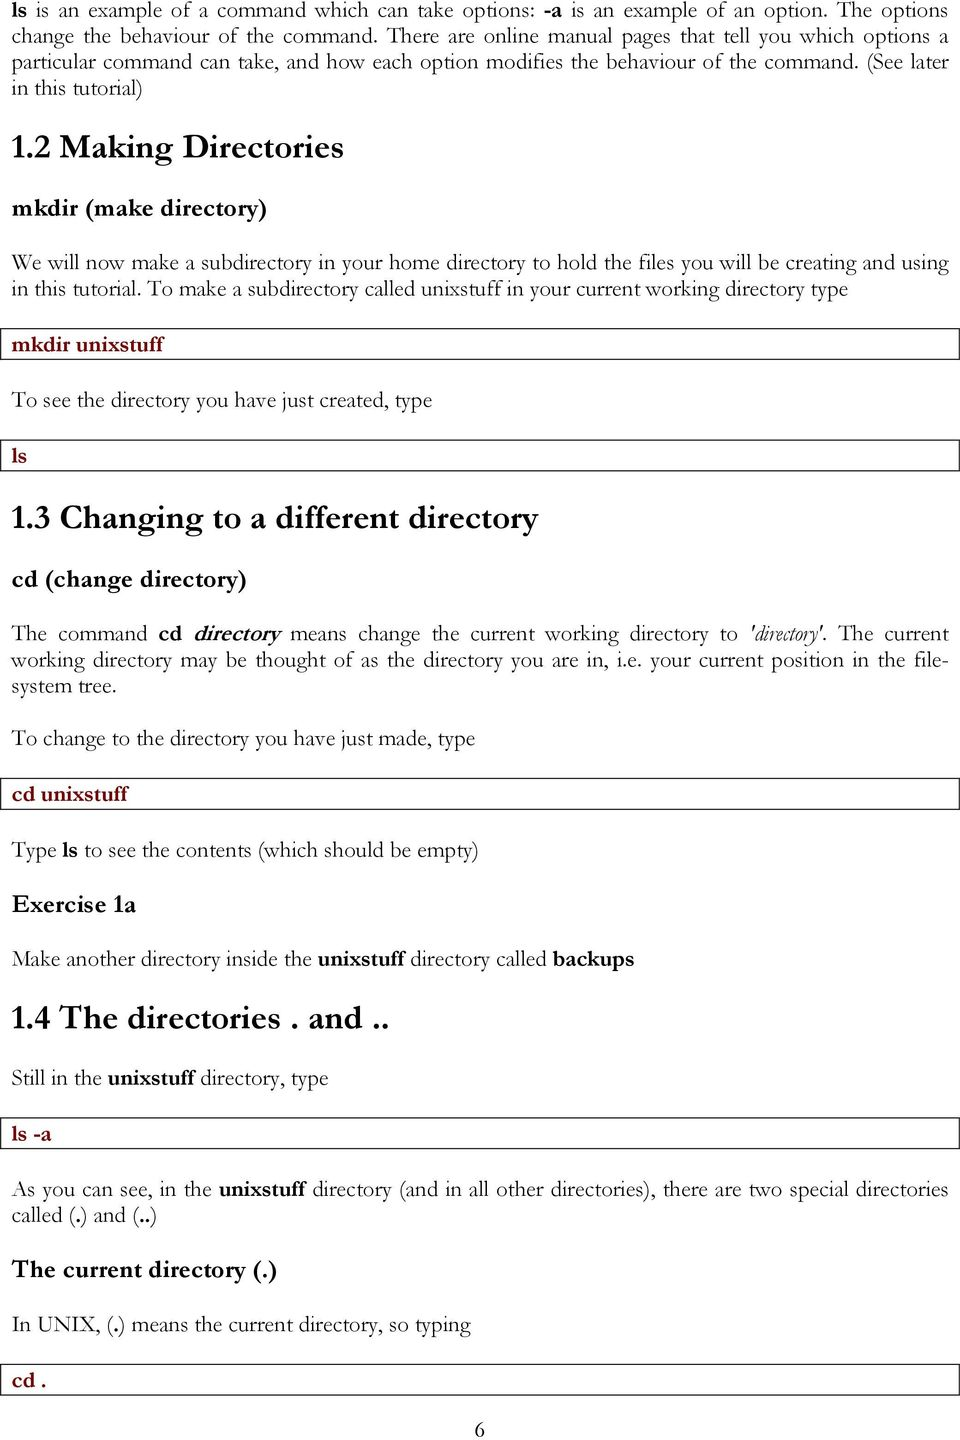 2 Making Directories mkdir (make directory) We will now make a subdirectory in your home directory to hold the files you will be creating and using in this tutorial.